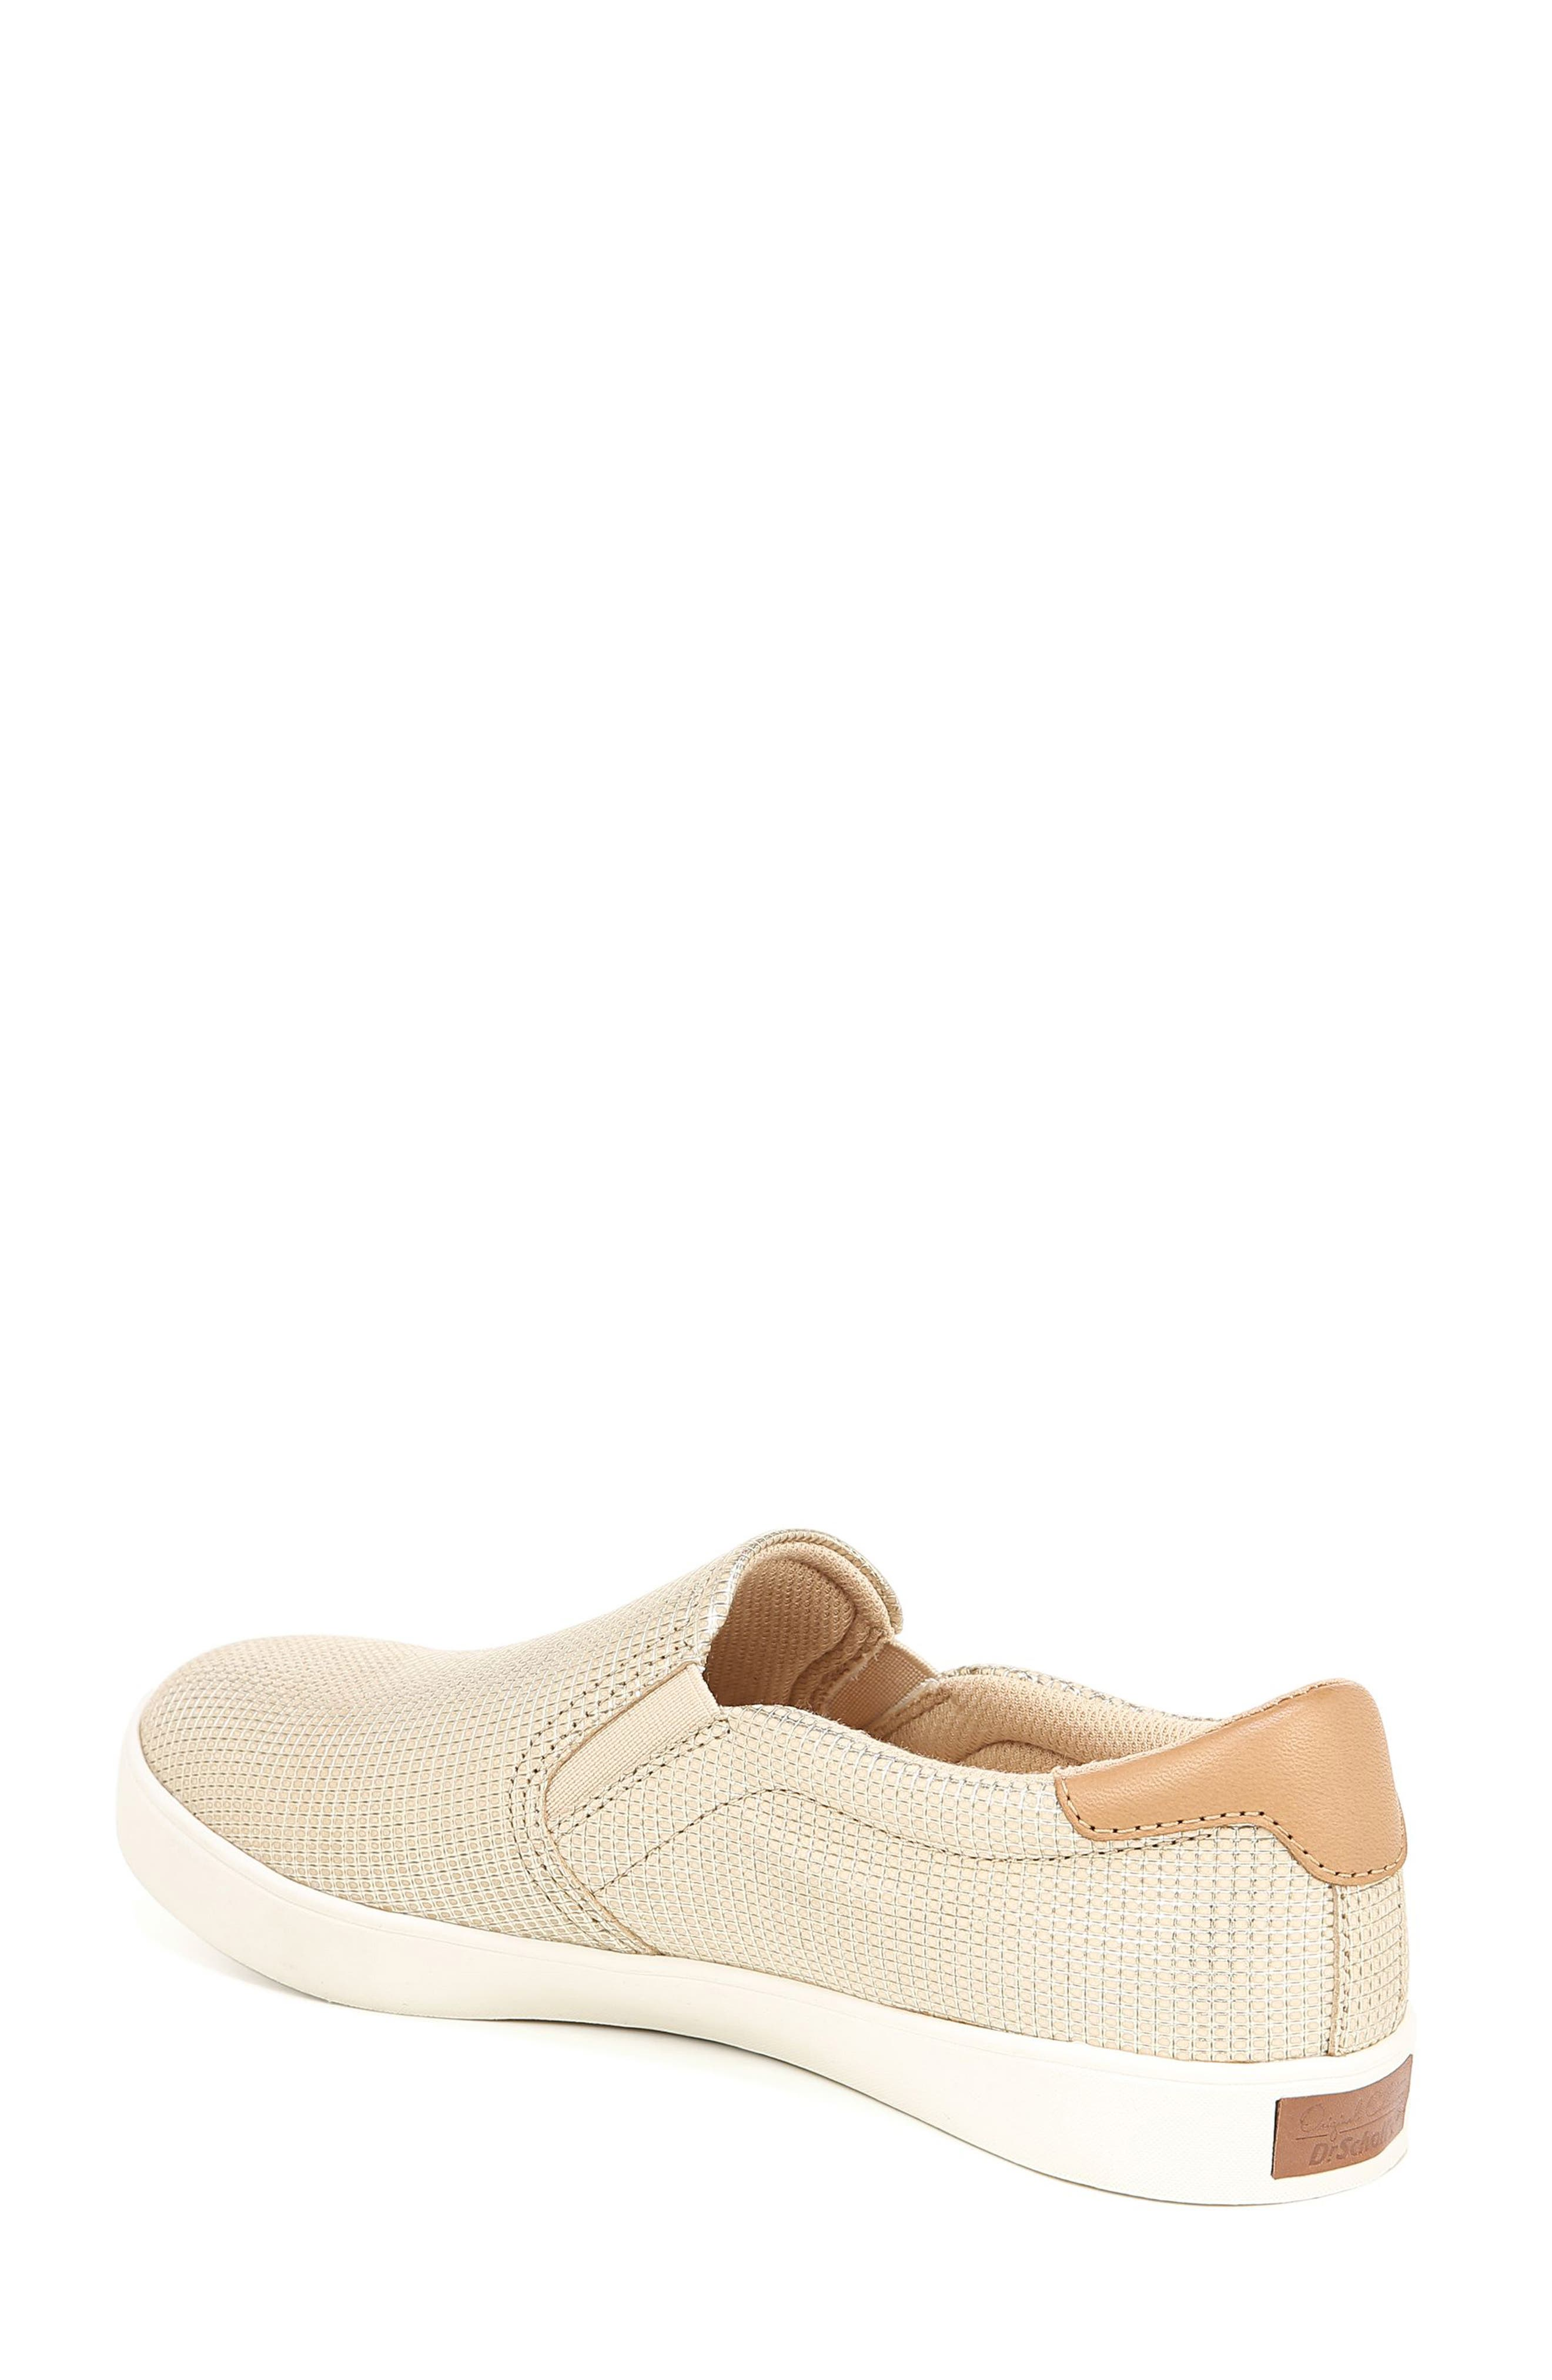 ,                             Original Collection 'Scout' Slip On Sneaker,                             Alternate thumbnail 2, color,                             BEIGE LEATHER